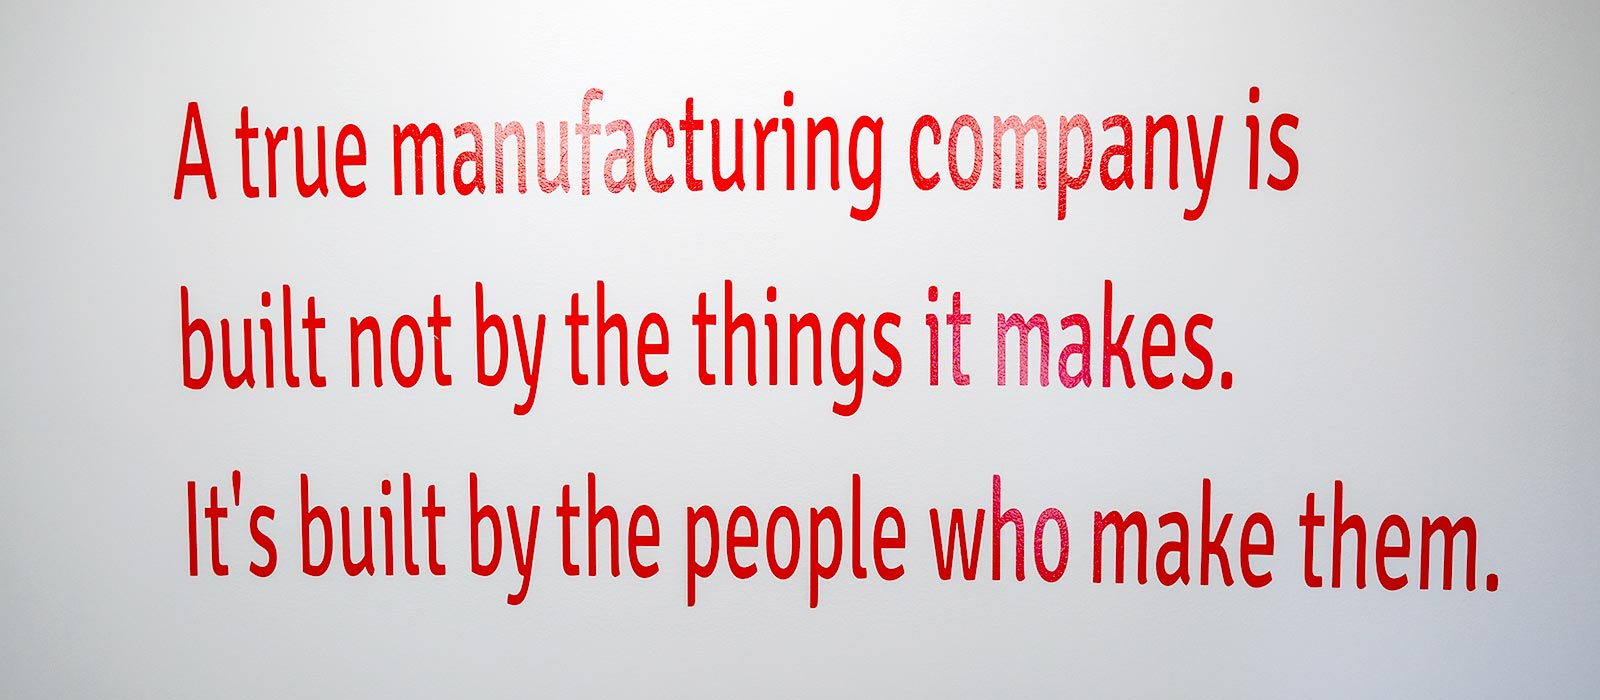 Kremin Inc. A true manufacturing company is built not by the things it makes. It's built by the people who make them.